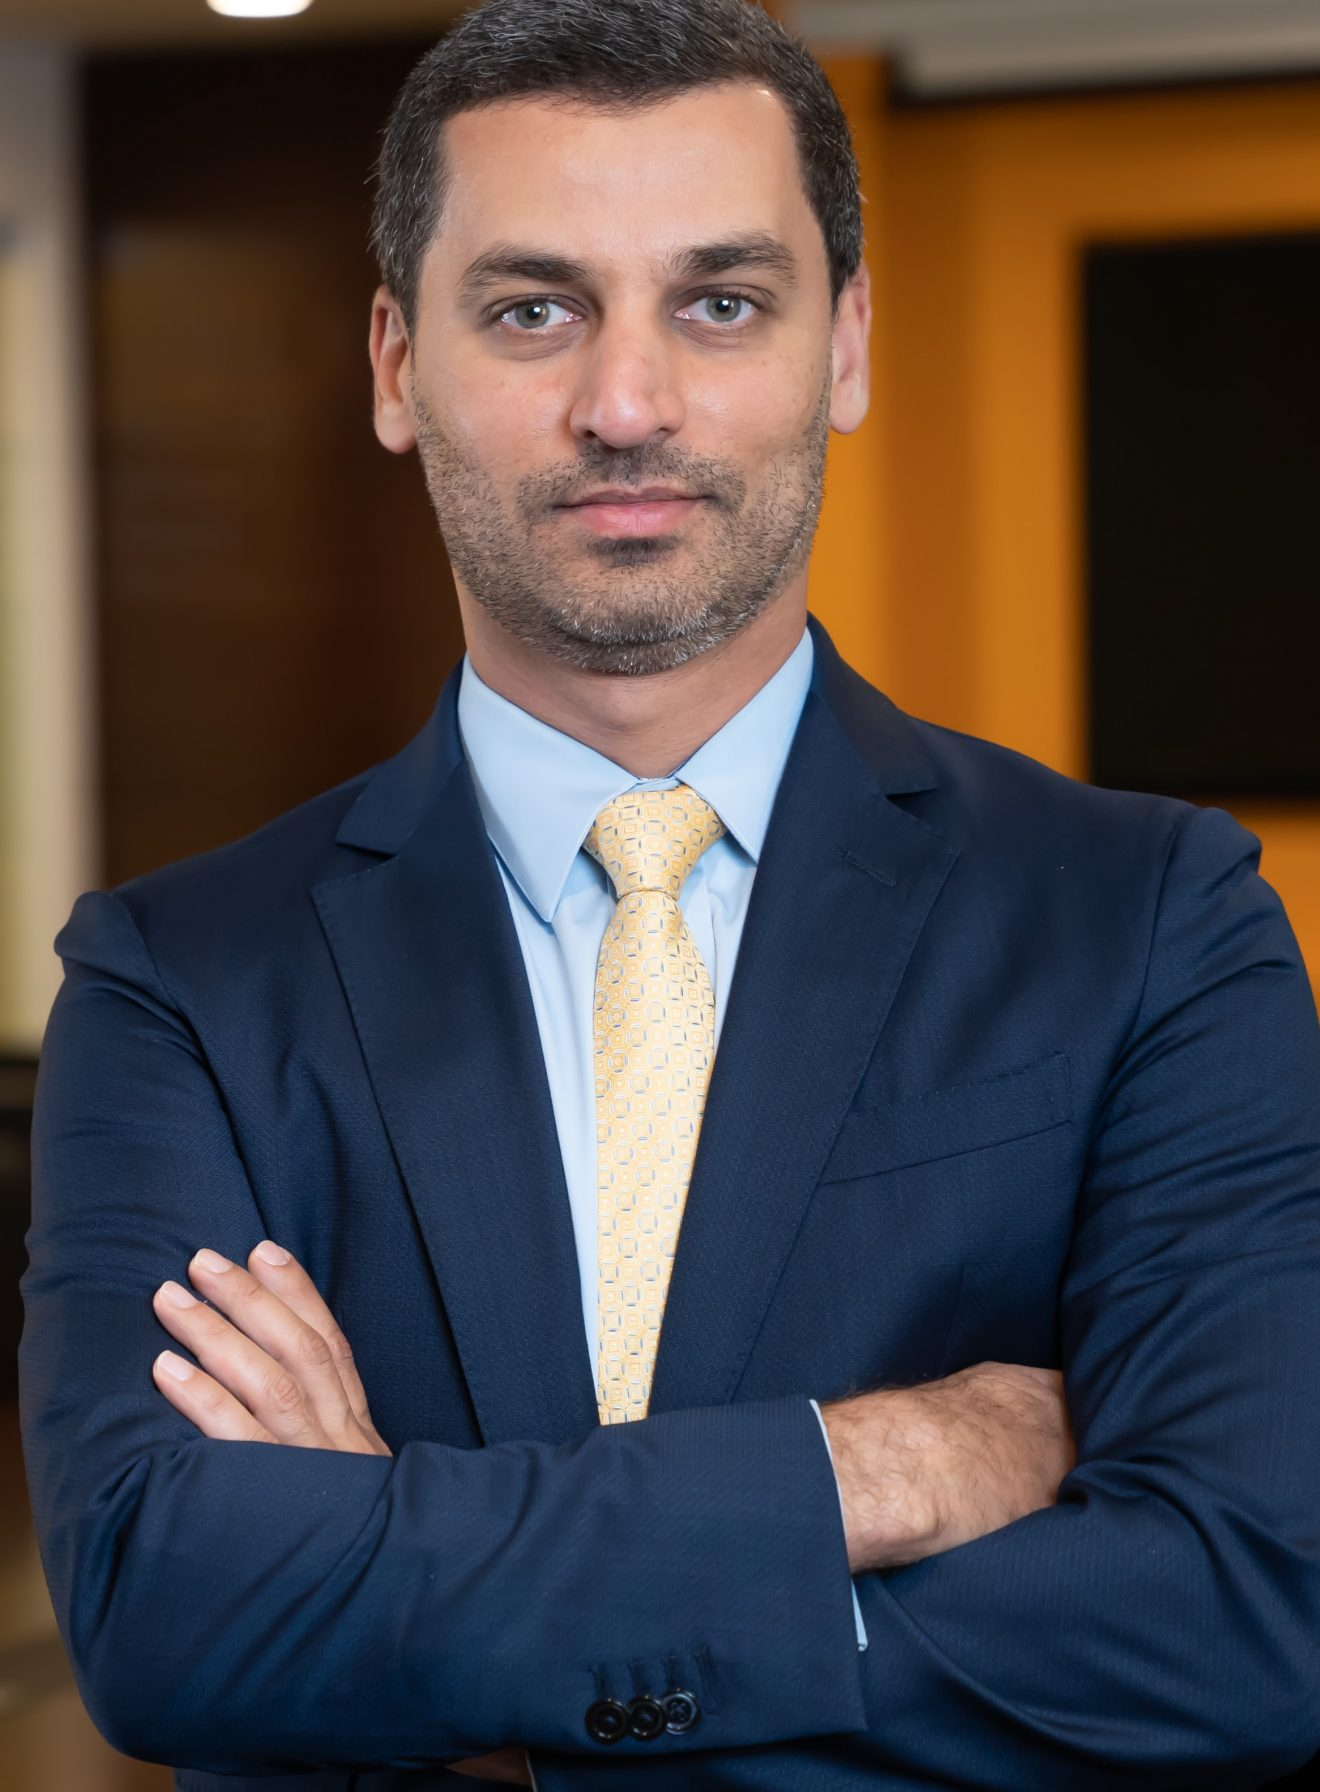 Emirates appoints Mohammad Sarhan as Vice President for India and Nepal